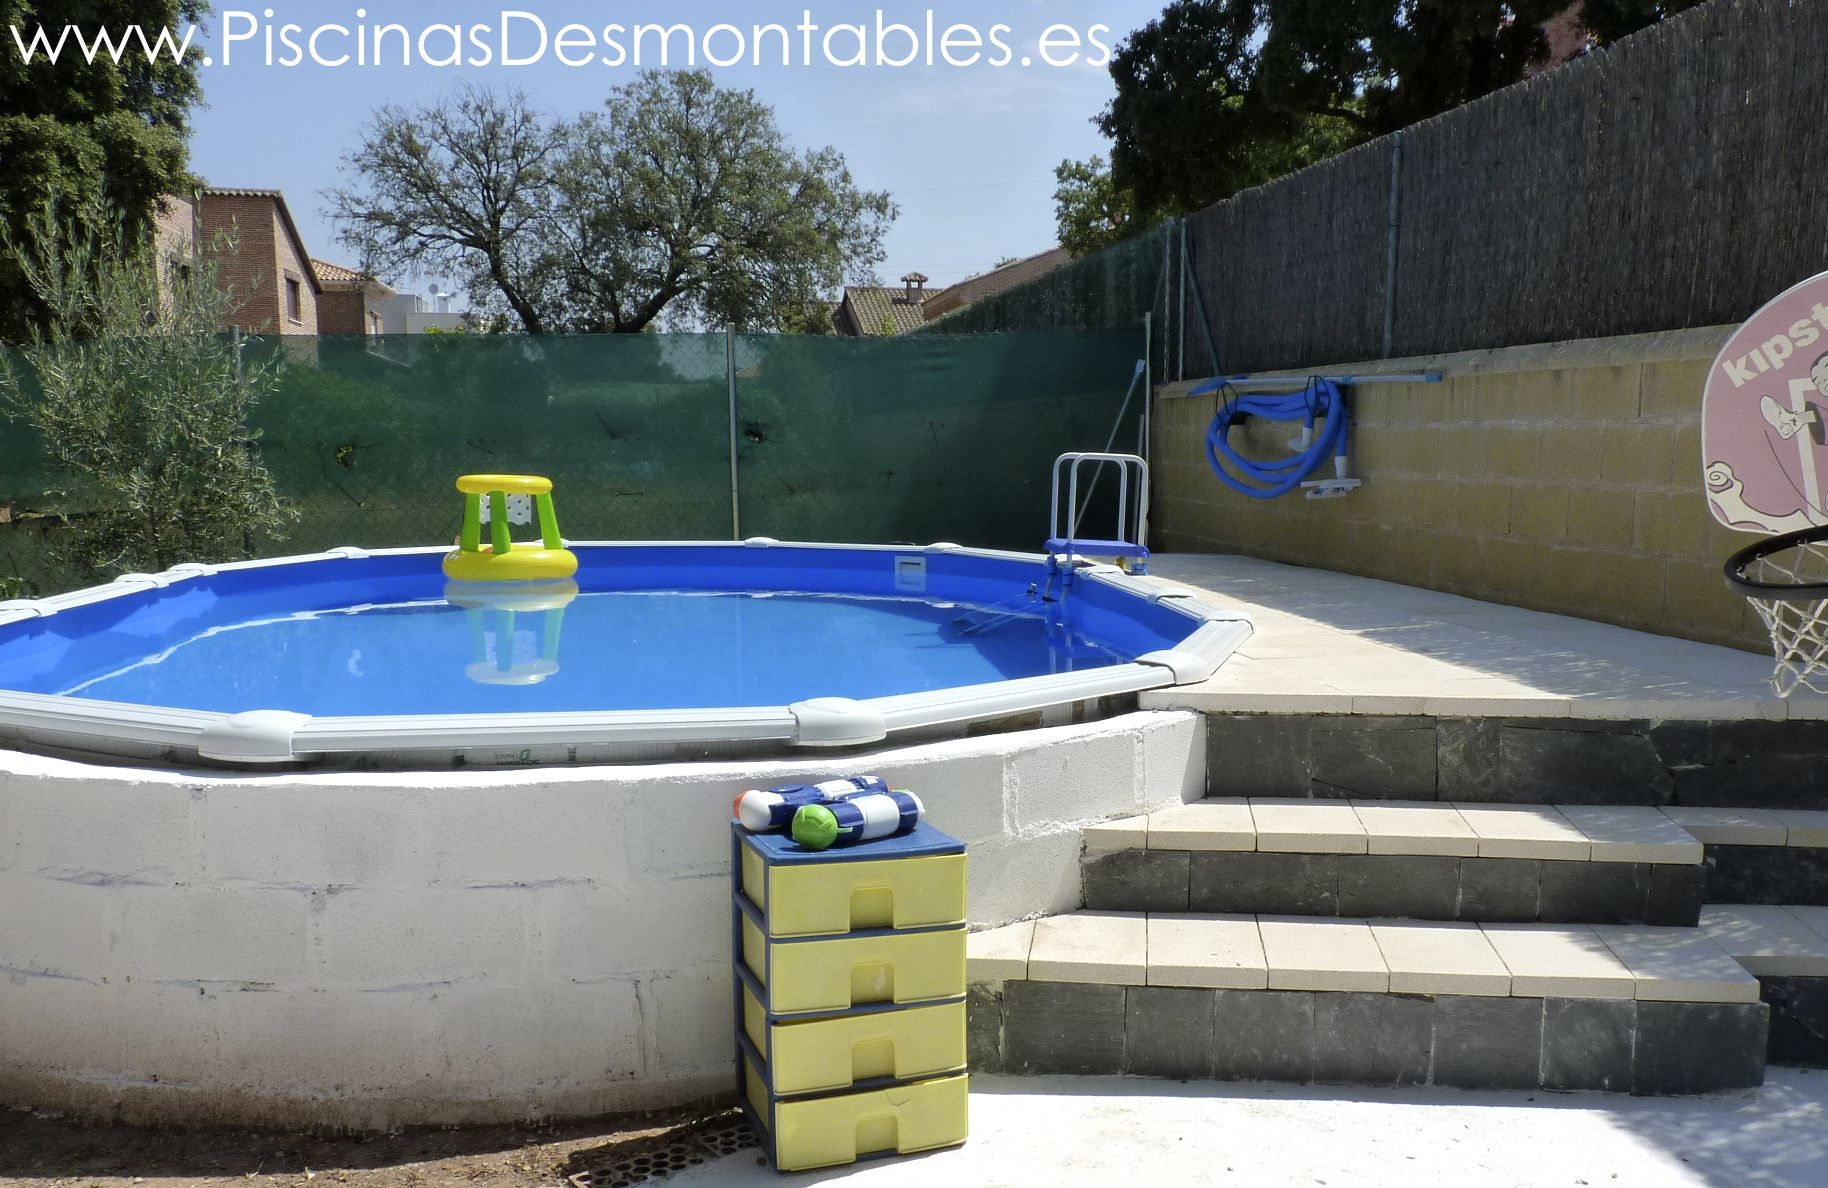 Piscina gre de 610x375x132cm serie atlantis semi enterrada for Piscinas gre enterradas